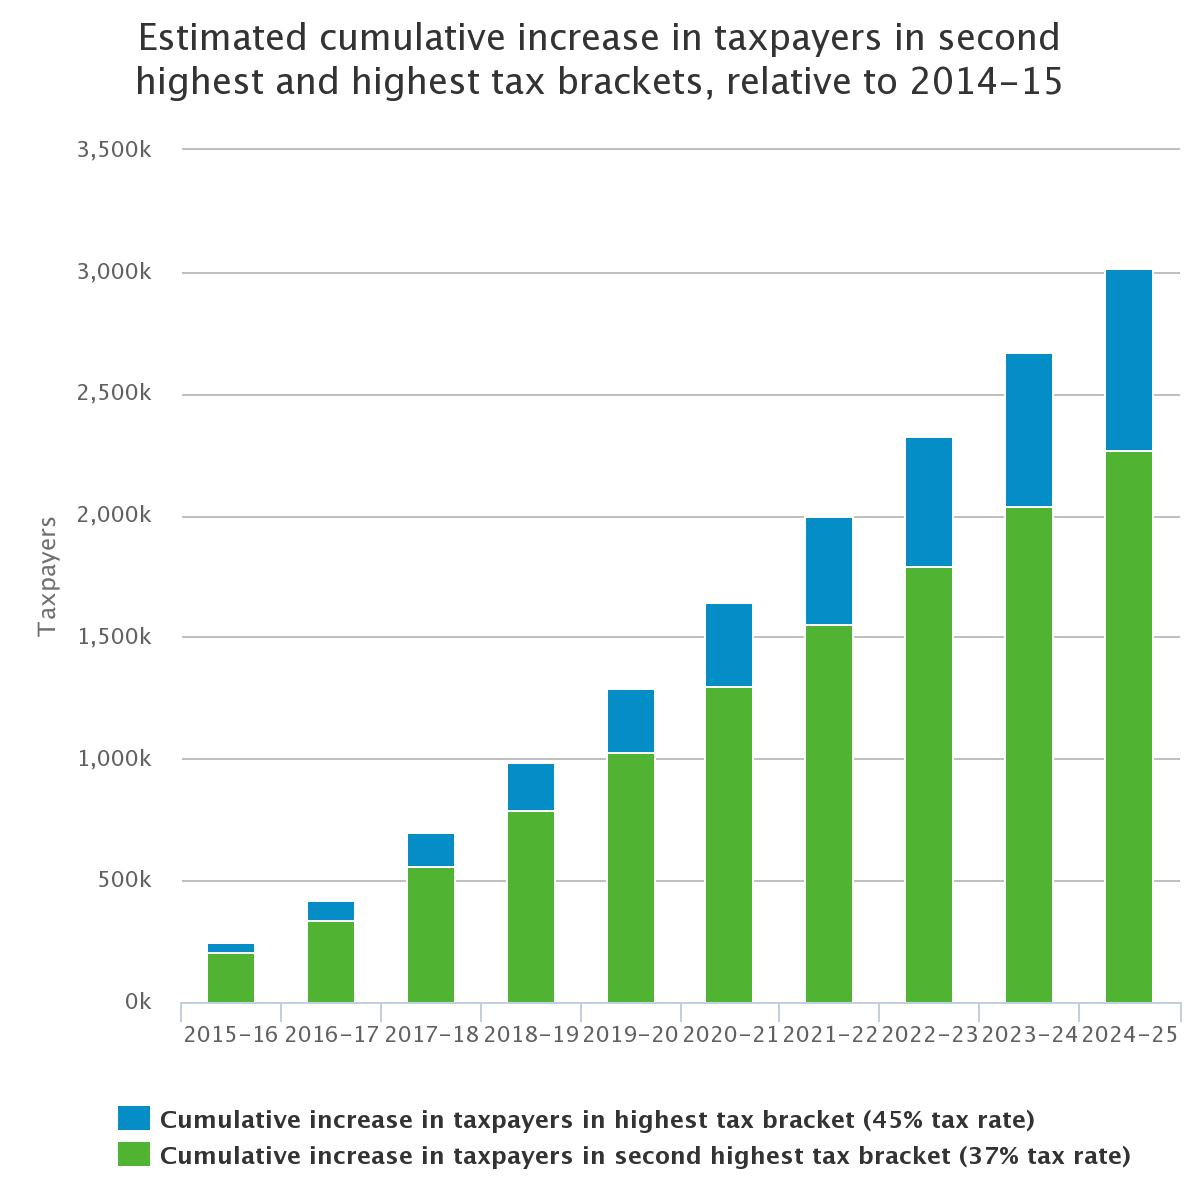 Estimated cumulative increase in second highest and highest tax brakets, relative to 2014-15